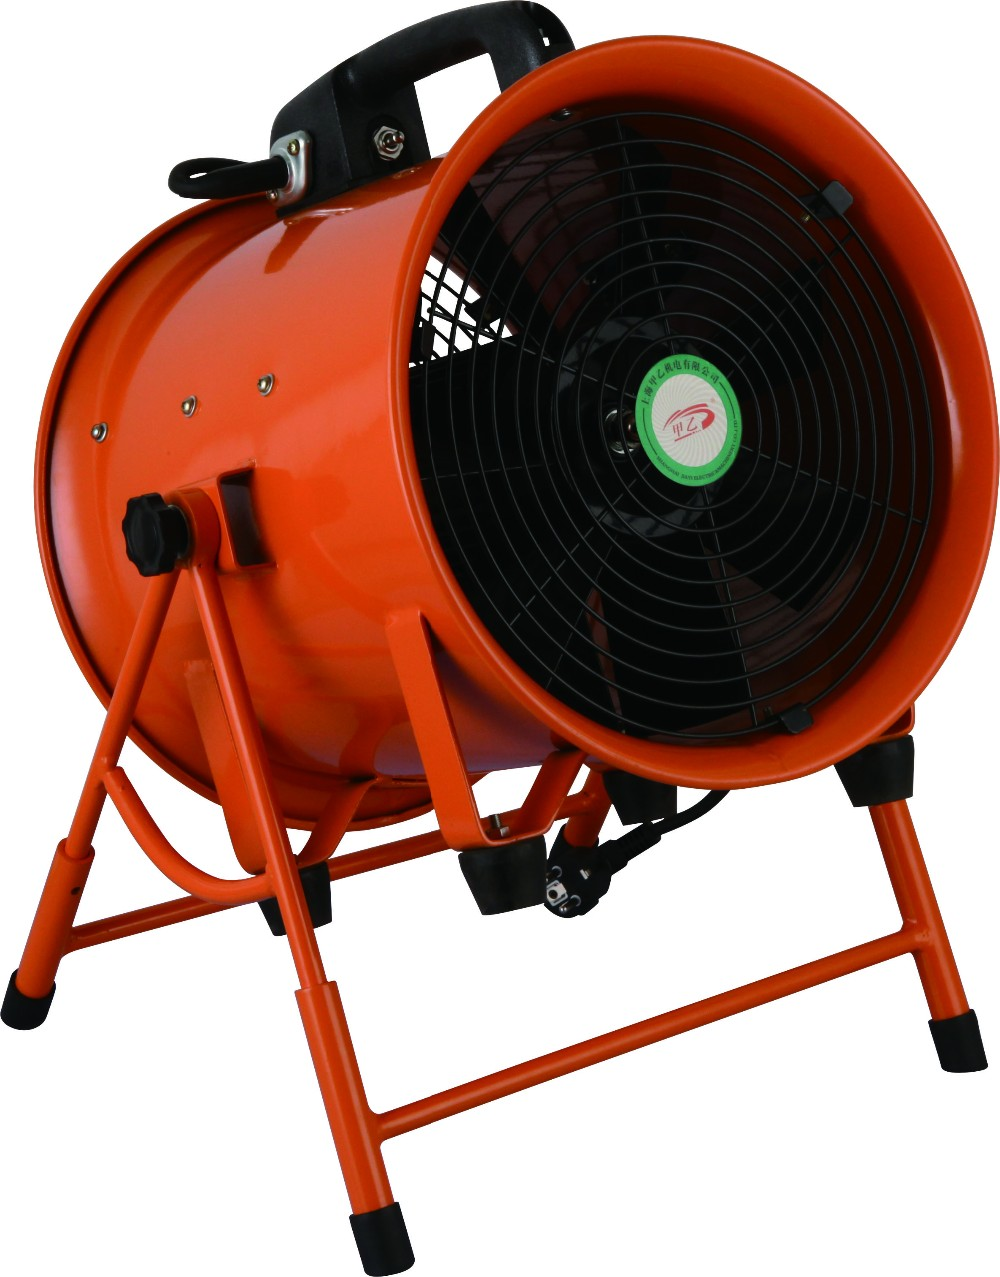 Portable Exhaust Fans : Mm sewer exhaust fan buy industrial